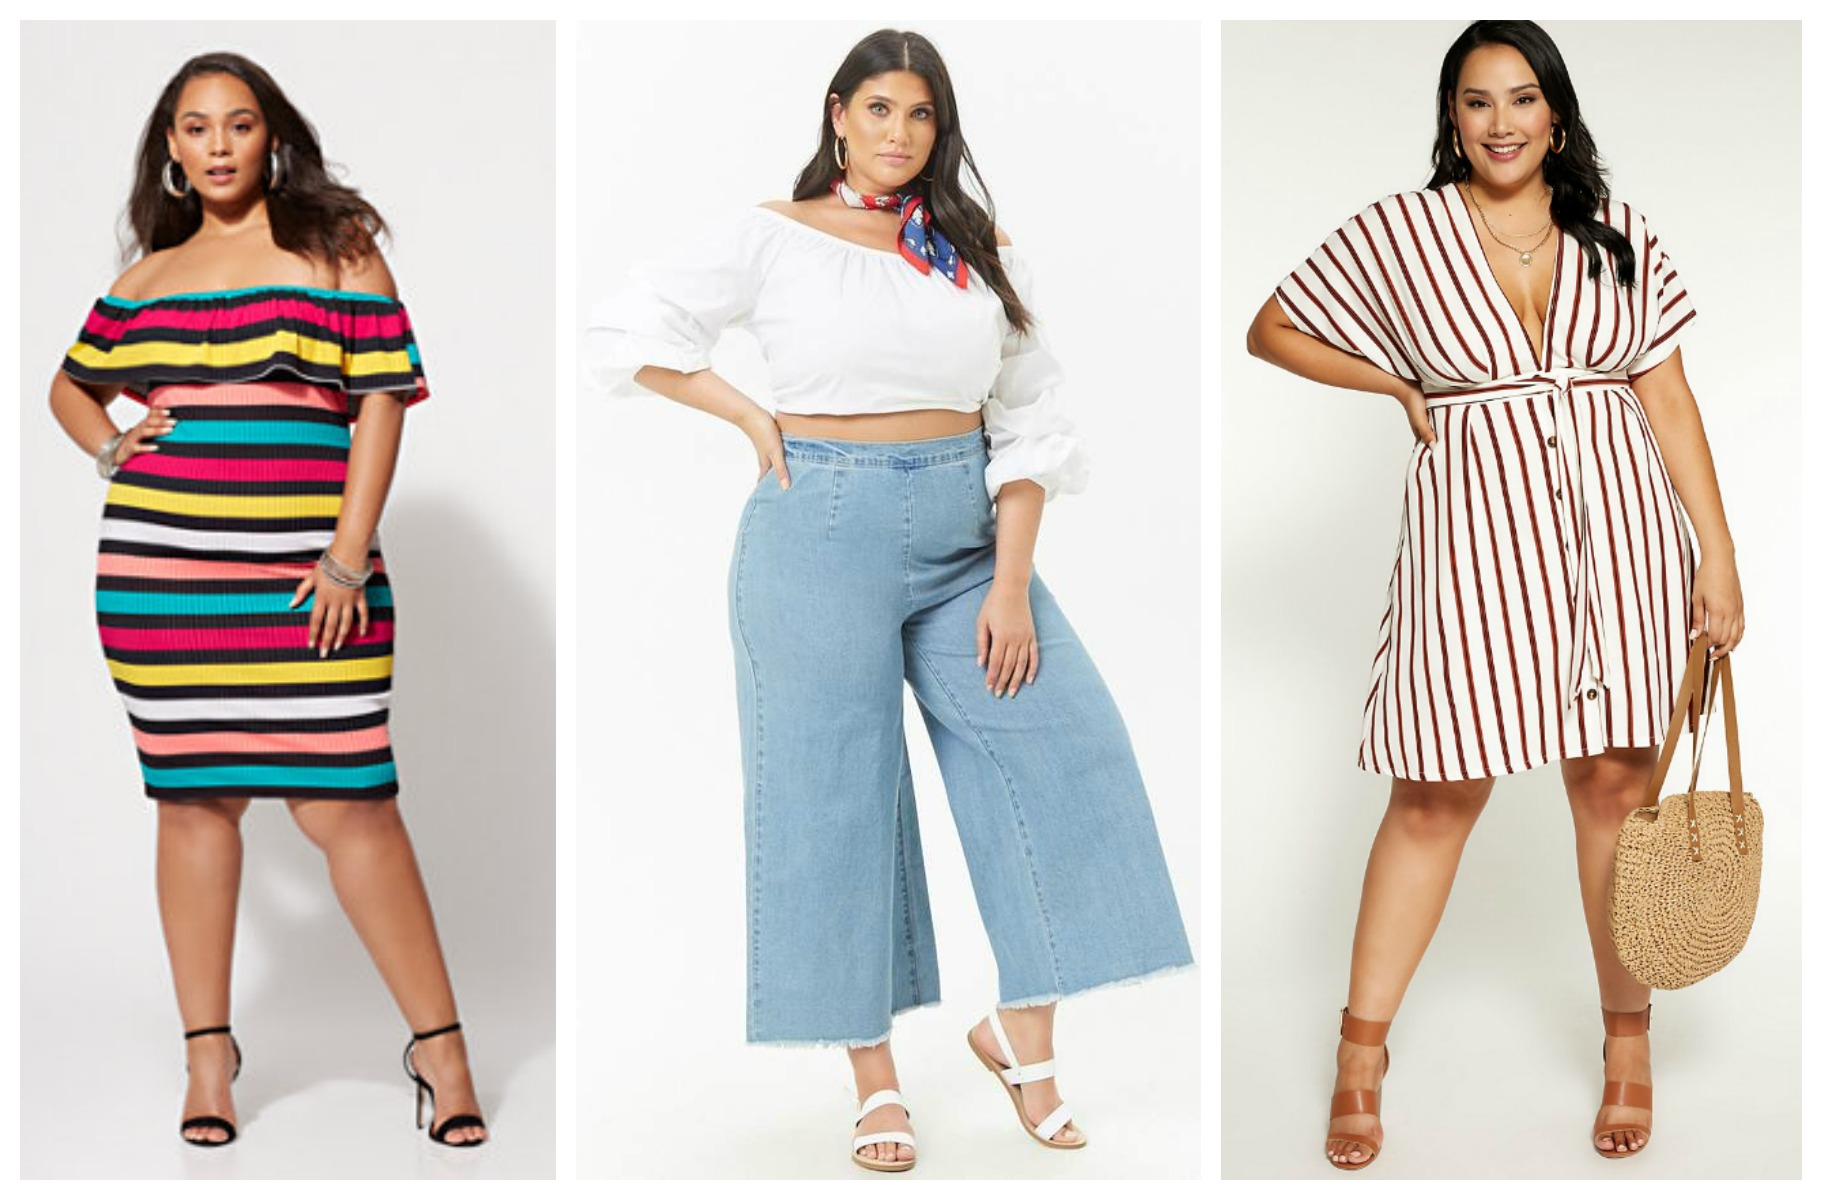 cfd898ce1 The weekend is finally here and we couldn't be happier. July is still going  strong with some amazing steals and deals from some of your favorite plus  size ...